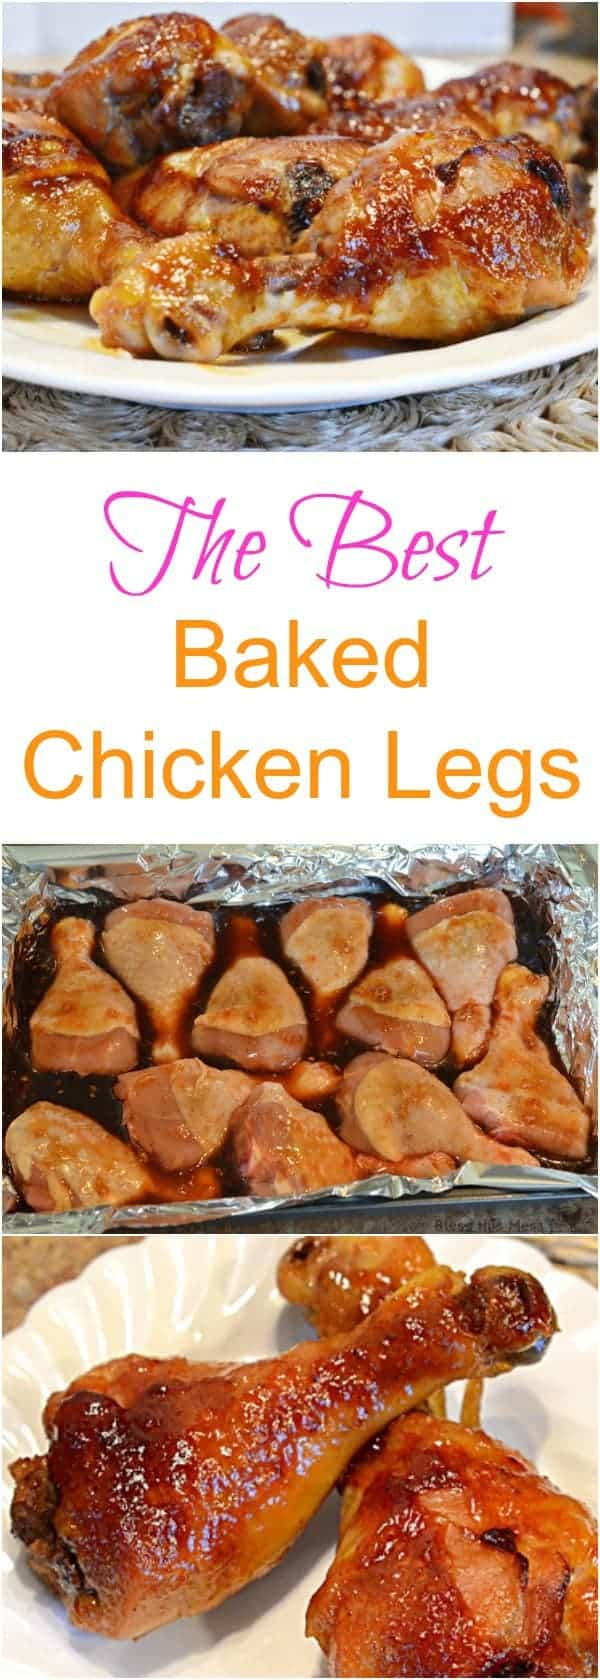 This simple 5 ingredient recipe makes the best baked chicken legs I have ever had in my whole life! (And the masses agree - this recipe has been shared more than 250,000 times!)